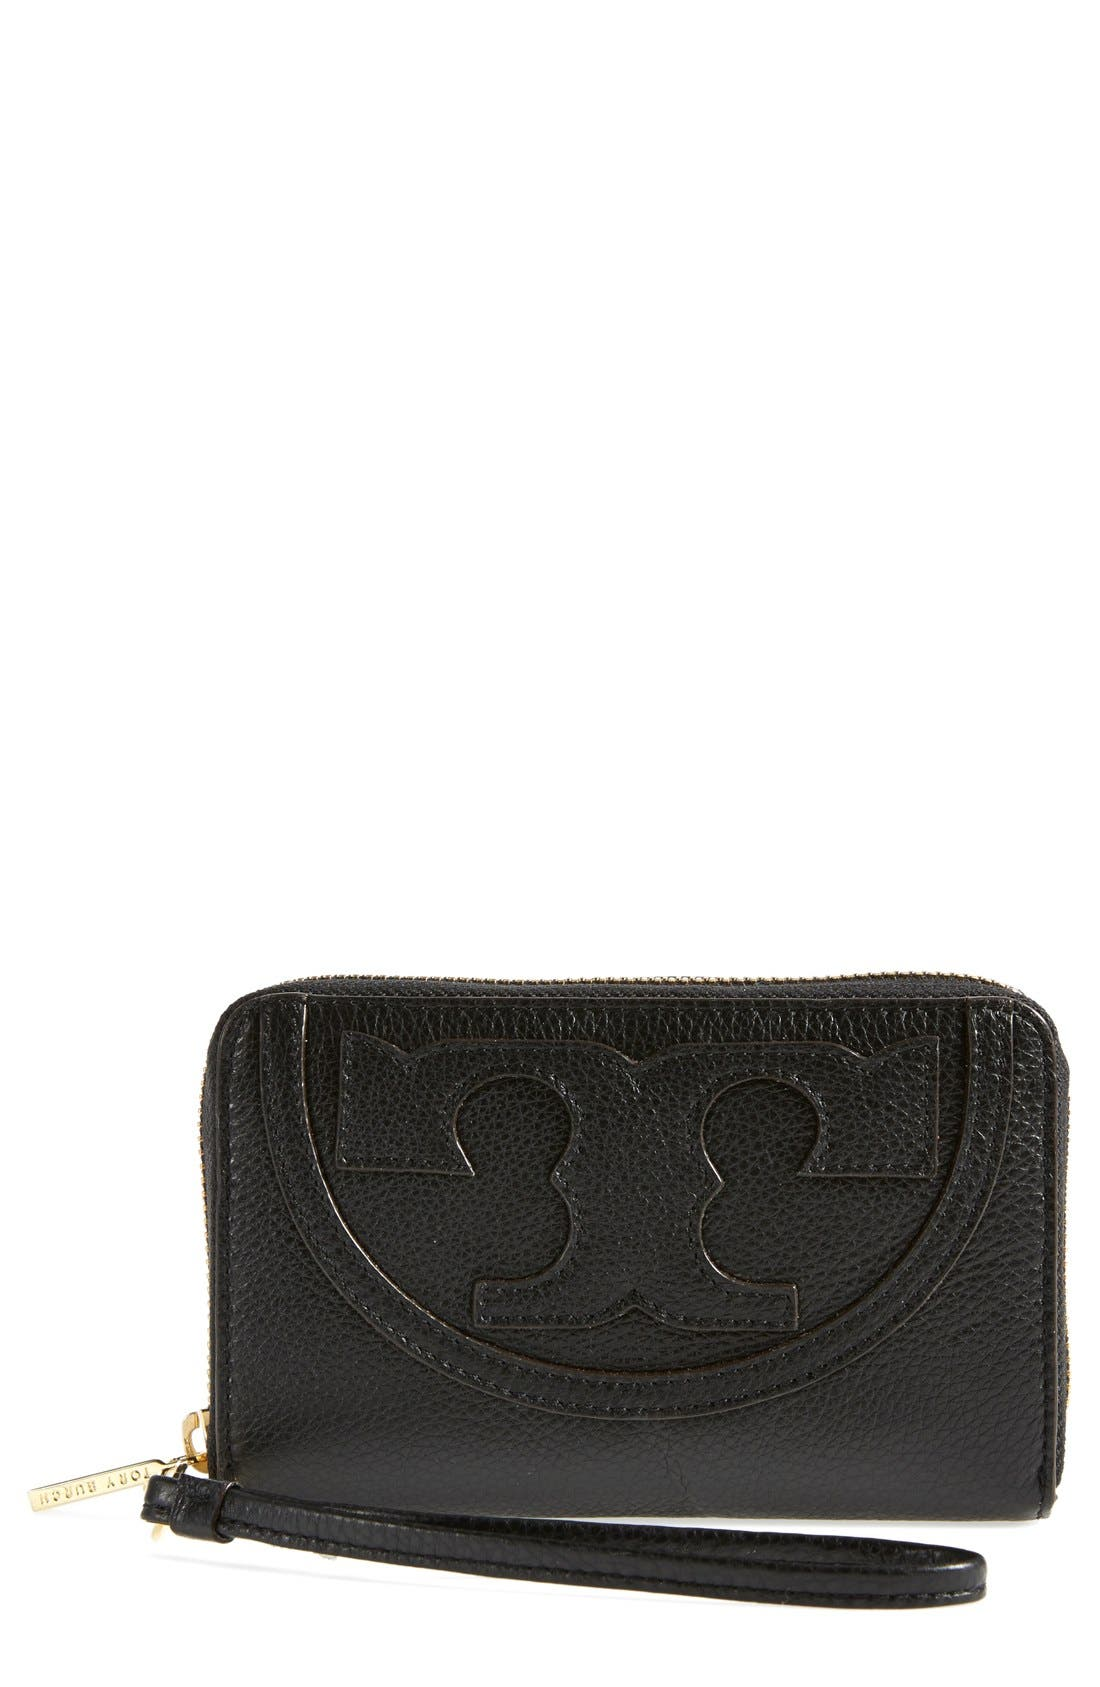 Alternate Image 1 Selected - Tory Burch 'All T' Leather Phone Wallet